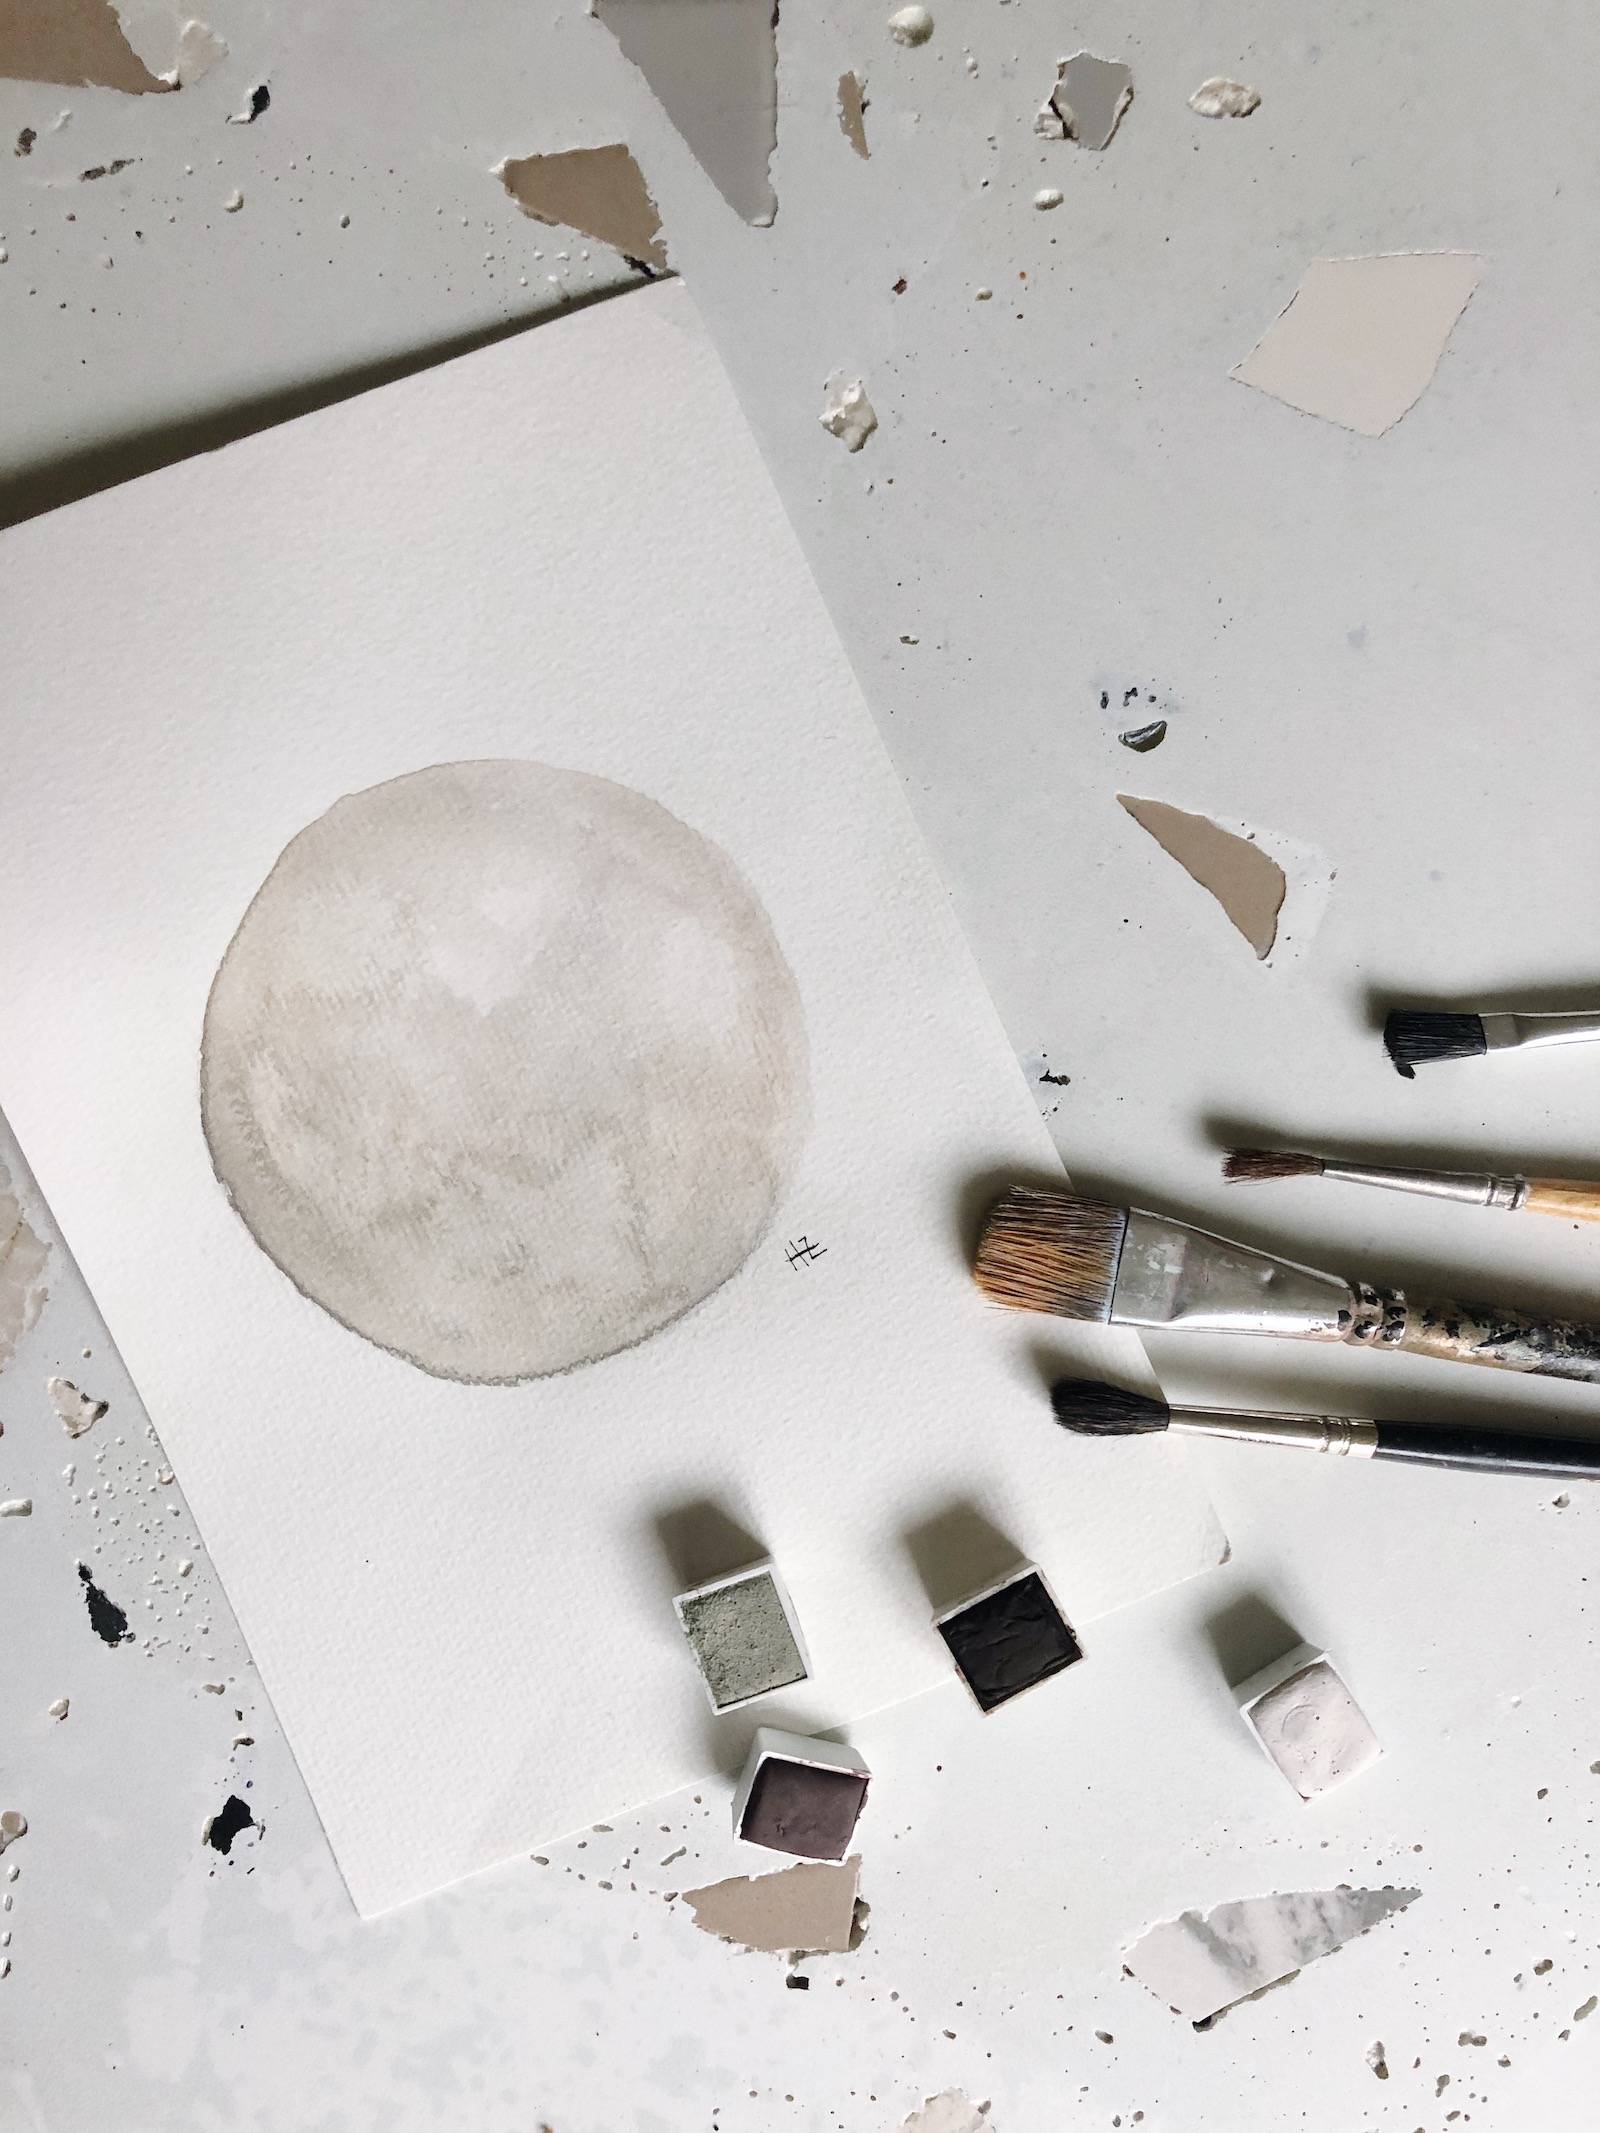 watercolor, painting, creativity, crafting